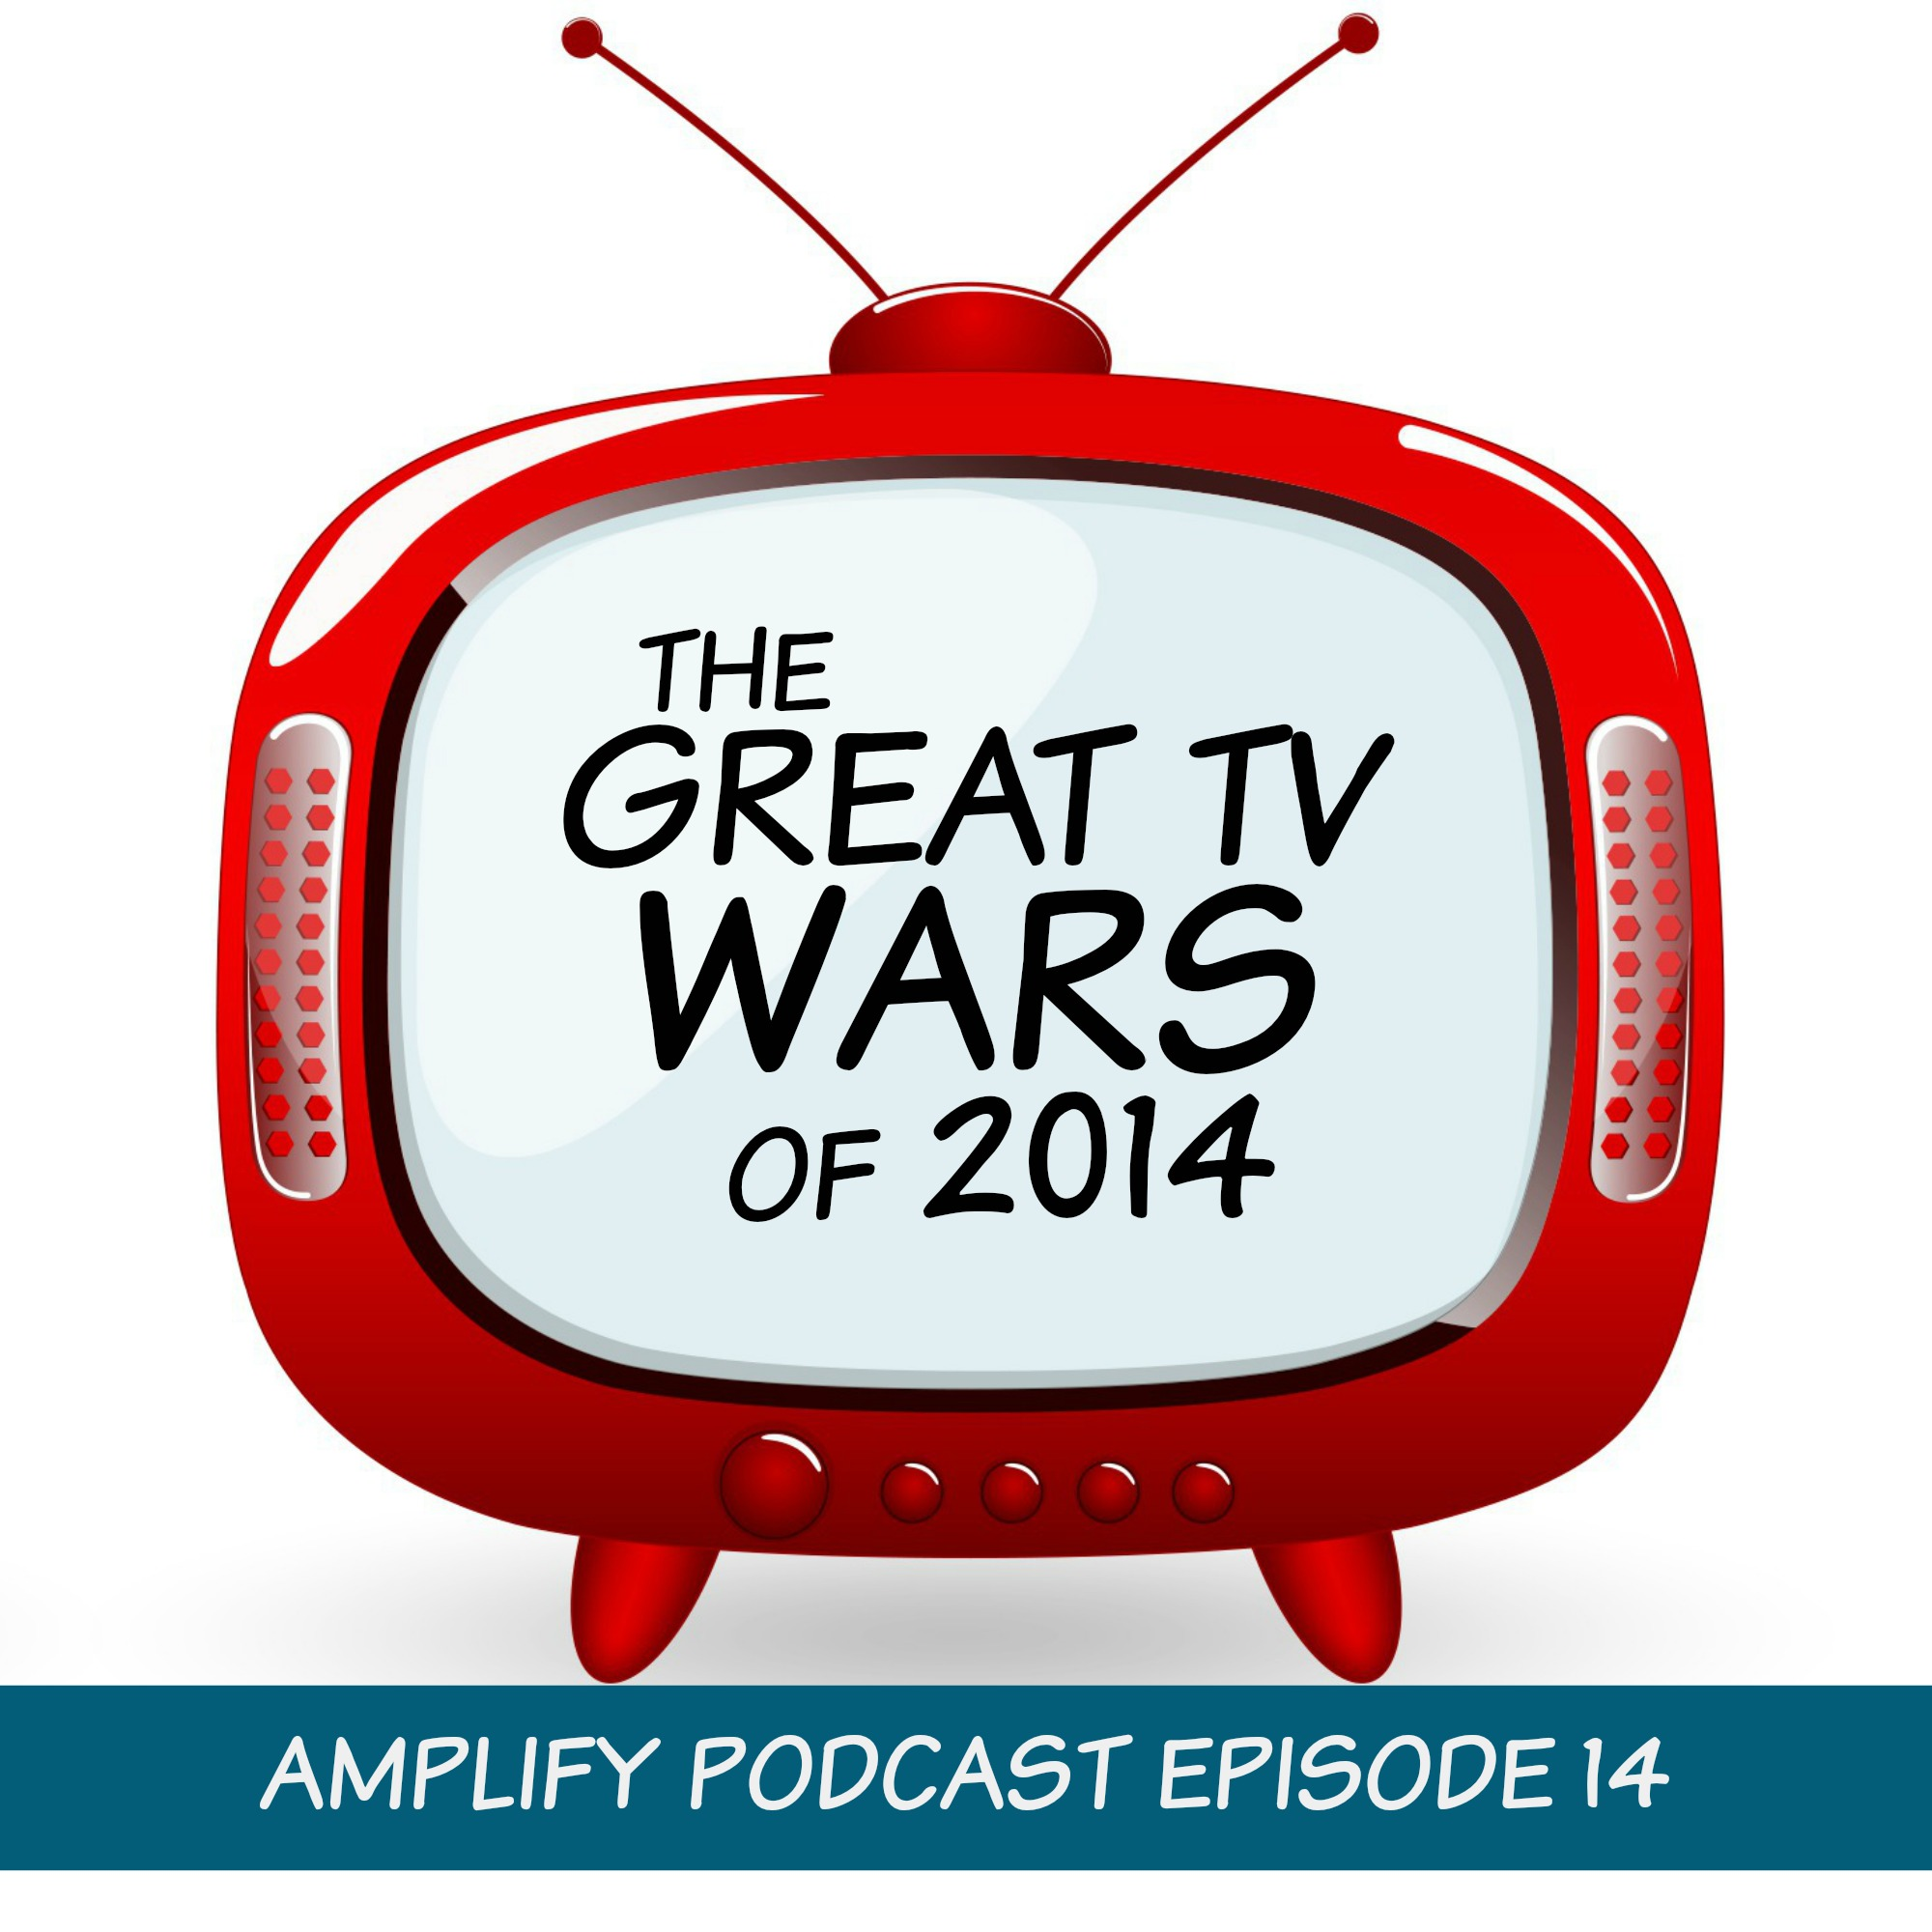 The Great TV War of 2014